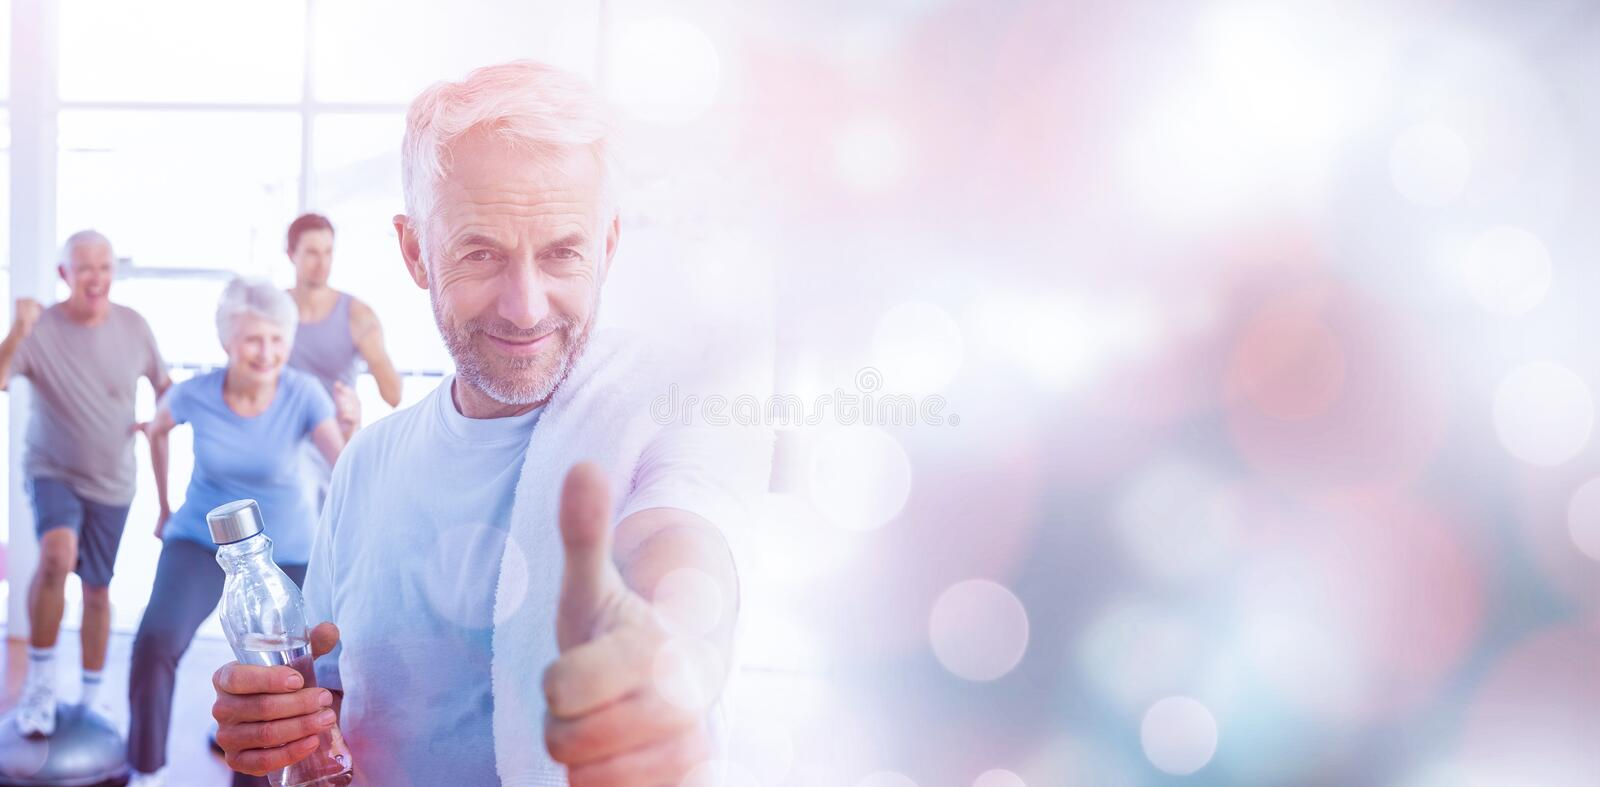 Man showing thumbs up sign with people exercising in background royalty free stock photography